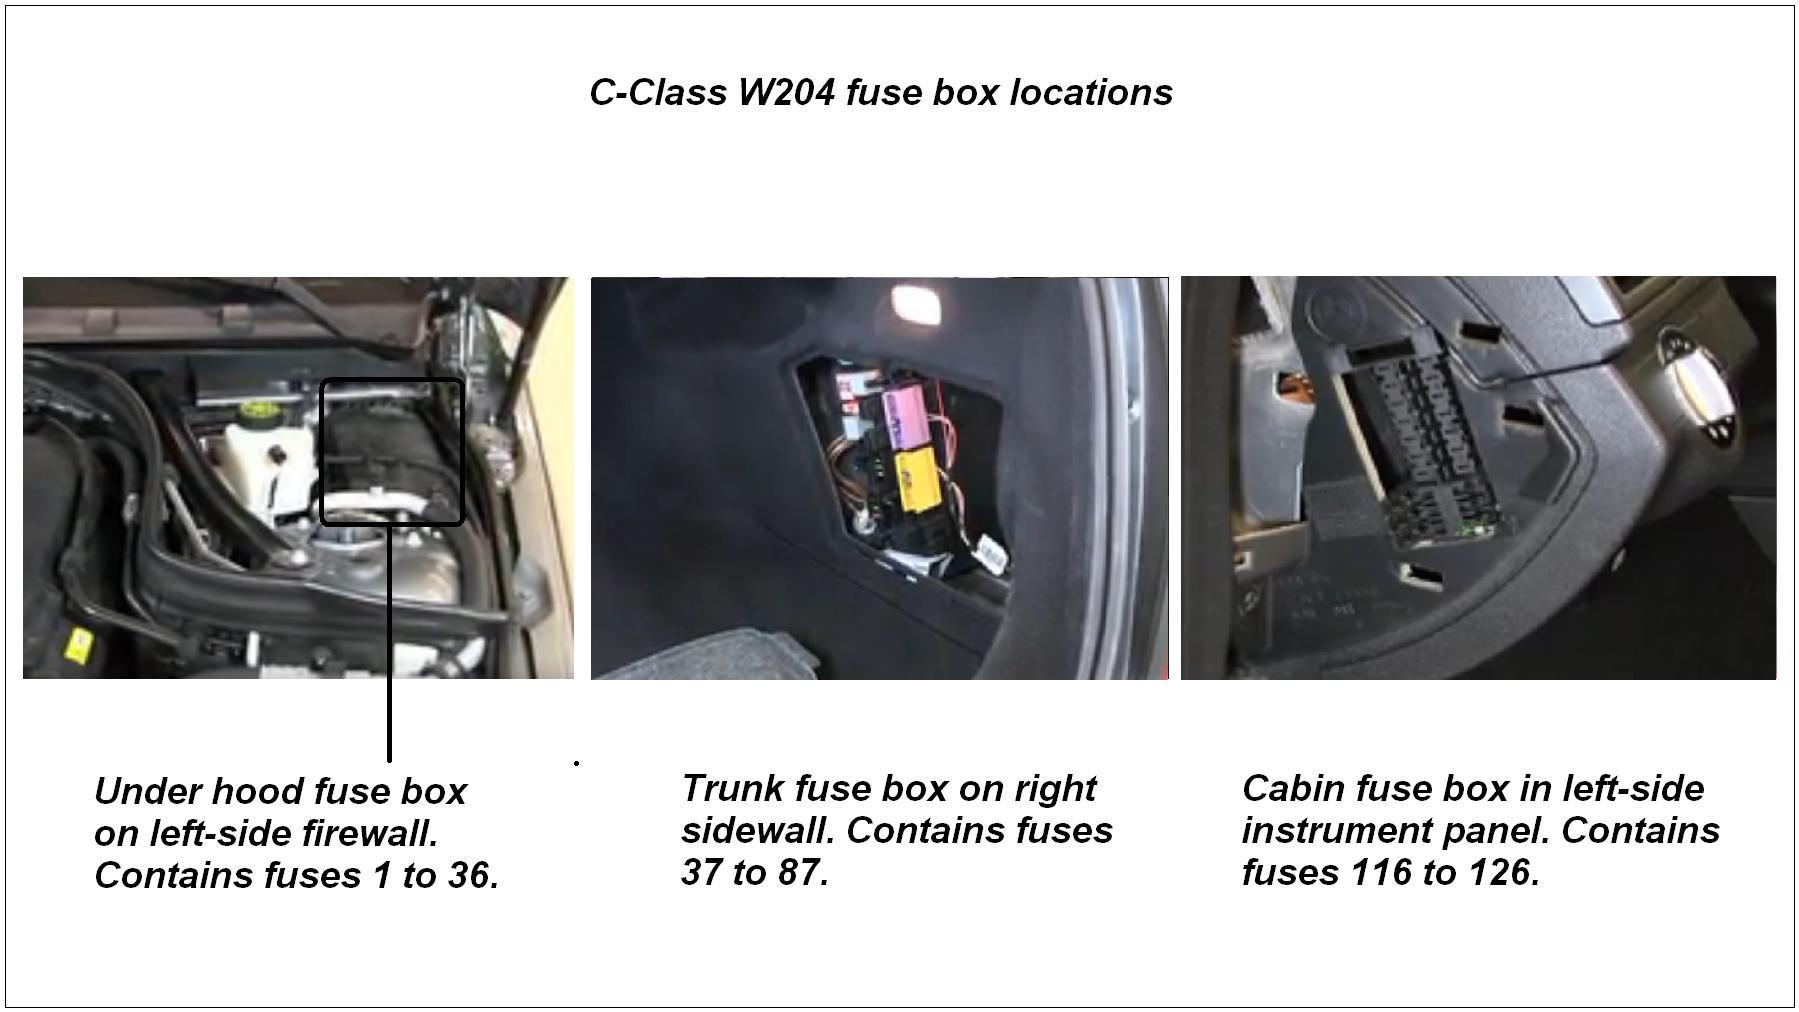 W204fuseboxlocations1799x1012 65419 mercedes benz c class w204 fuse diagrams and commonly blown fuses E63 AMG 4MATIC at bayanpartner.co